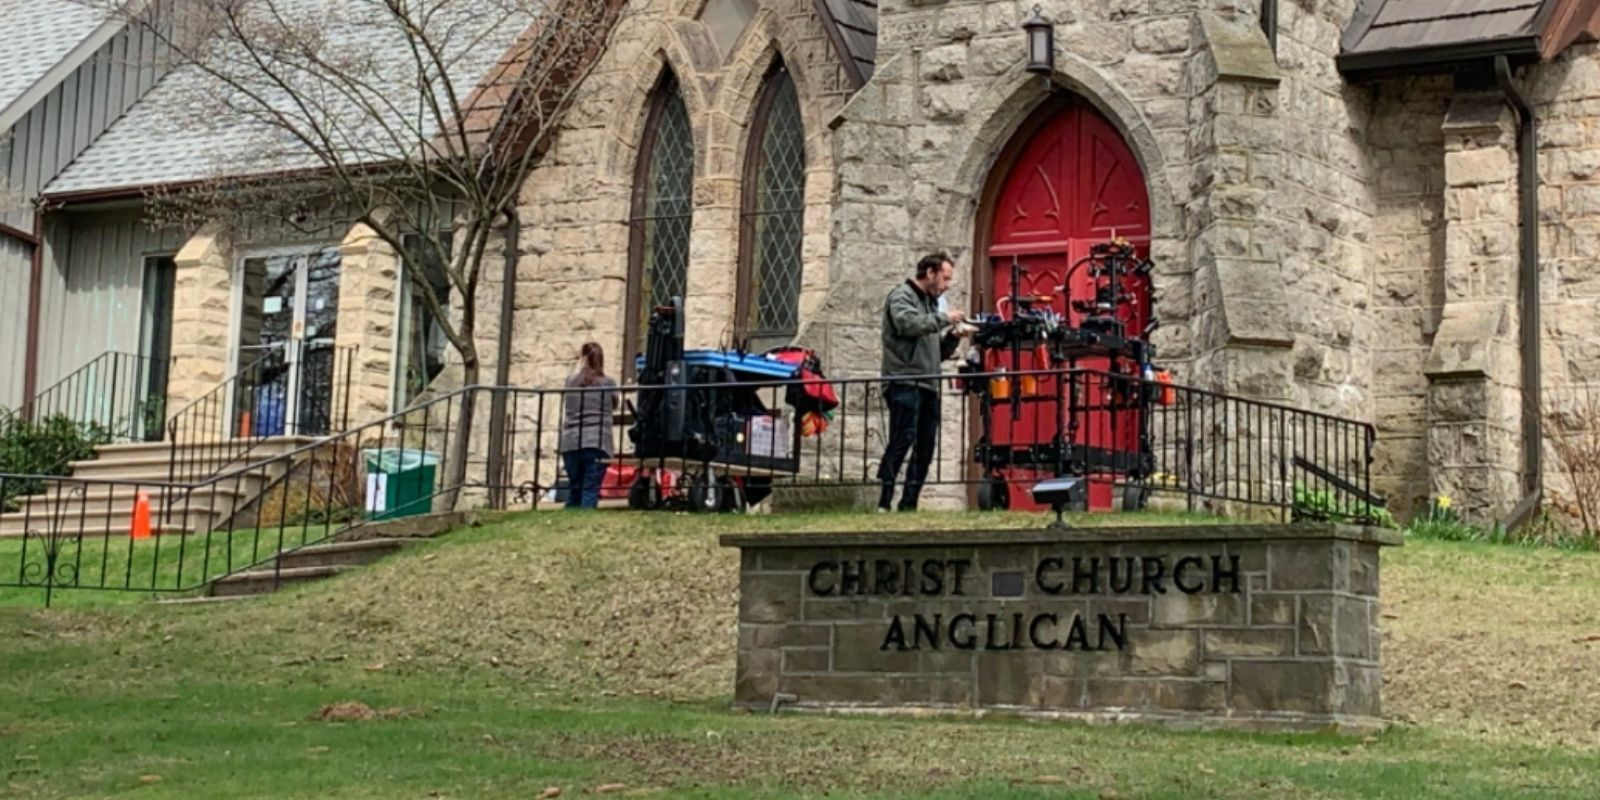 Ontario lockdown rules limit churches to '10 worshippers,' yet film sets allowed to pack them